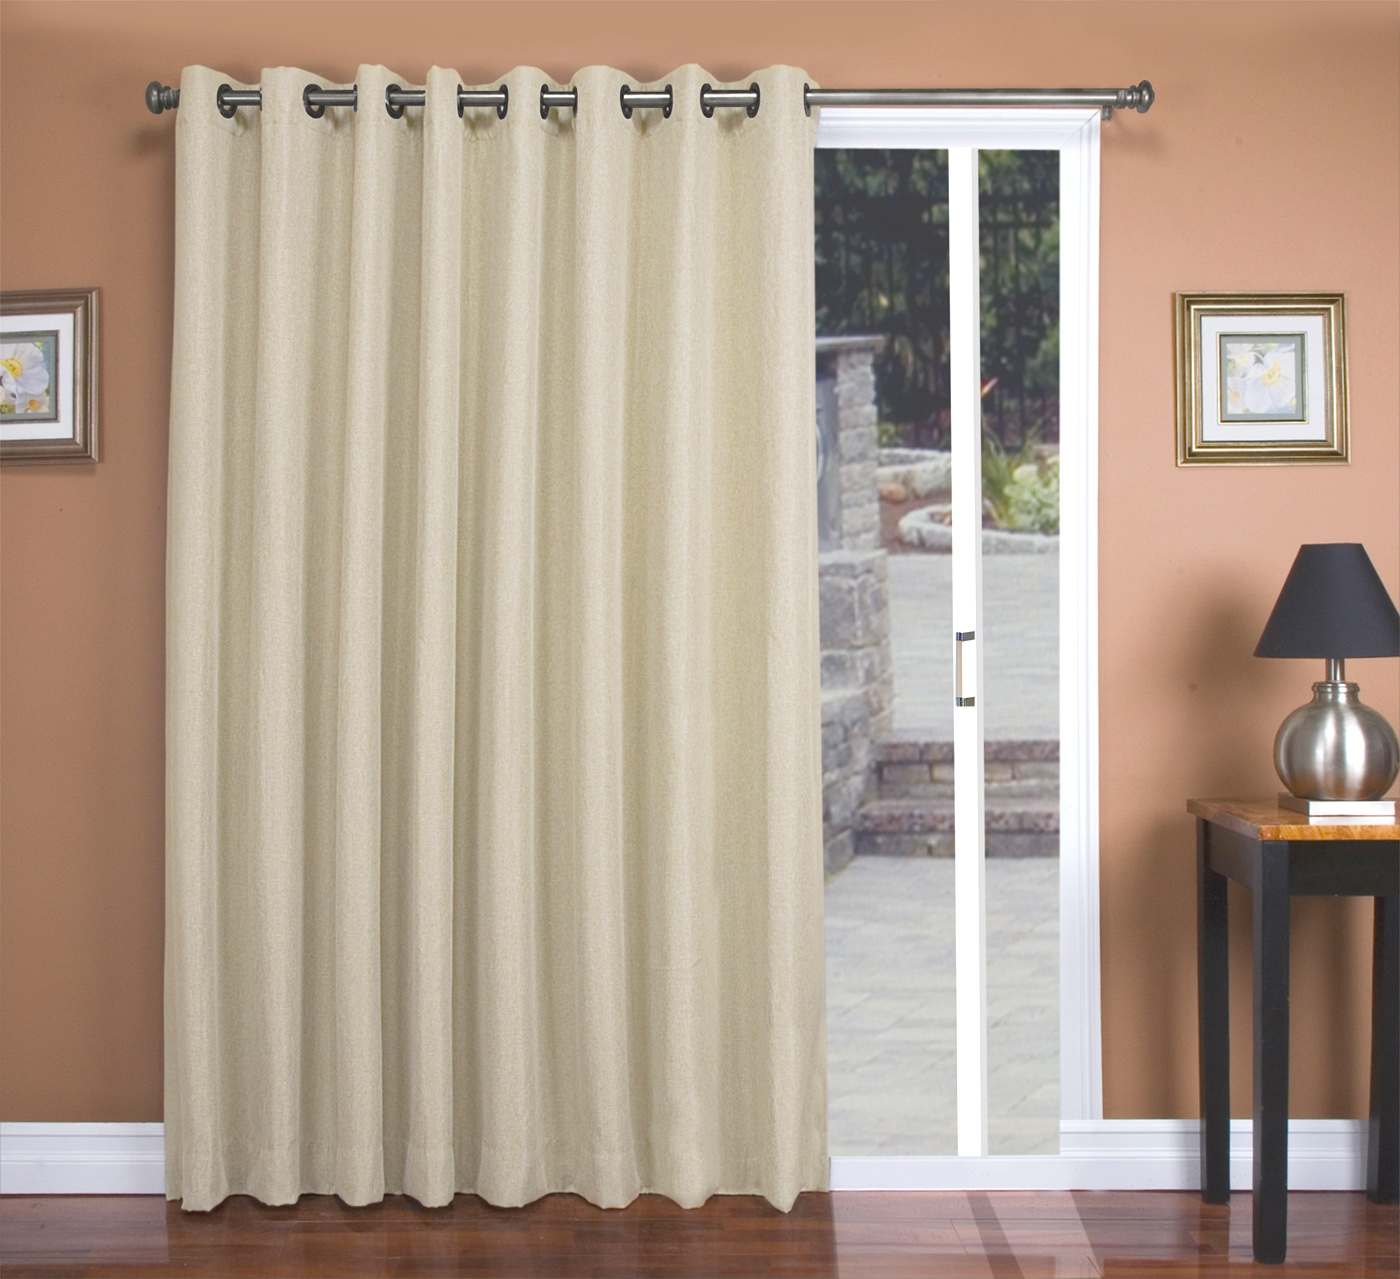 patio door curtains - thecurtainshop.com GPSYVJE